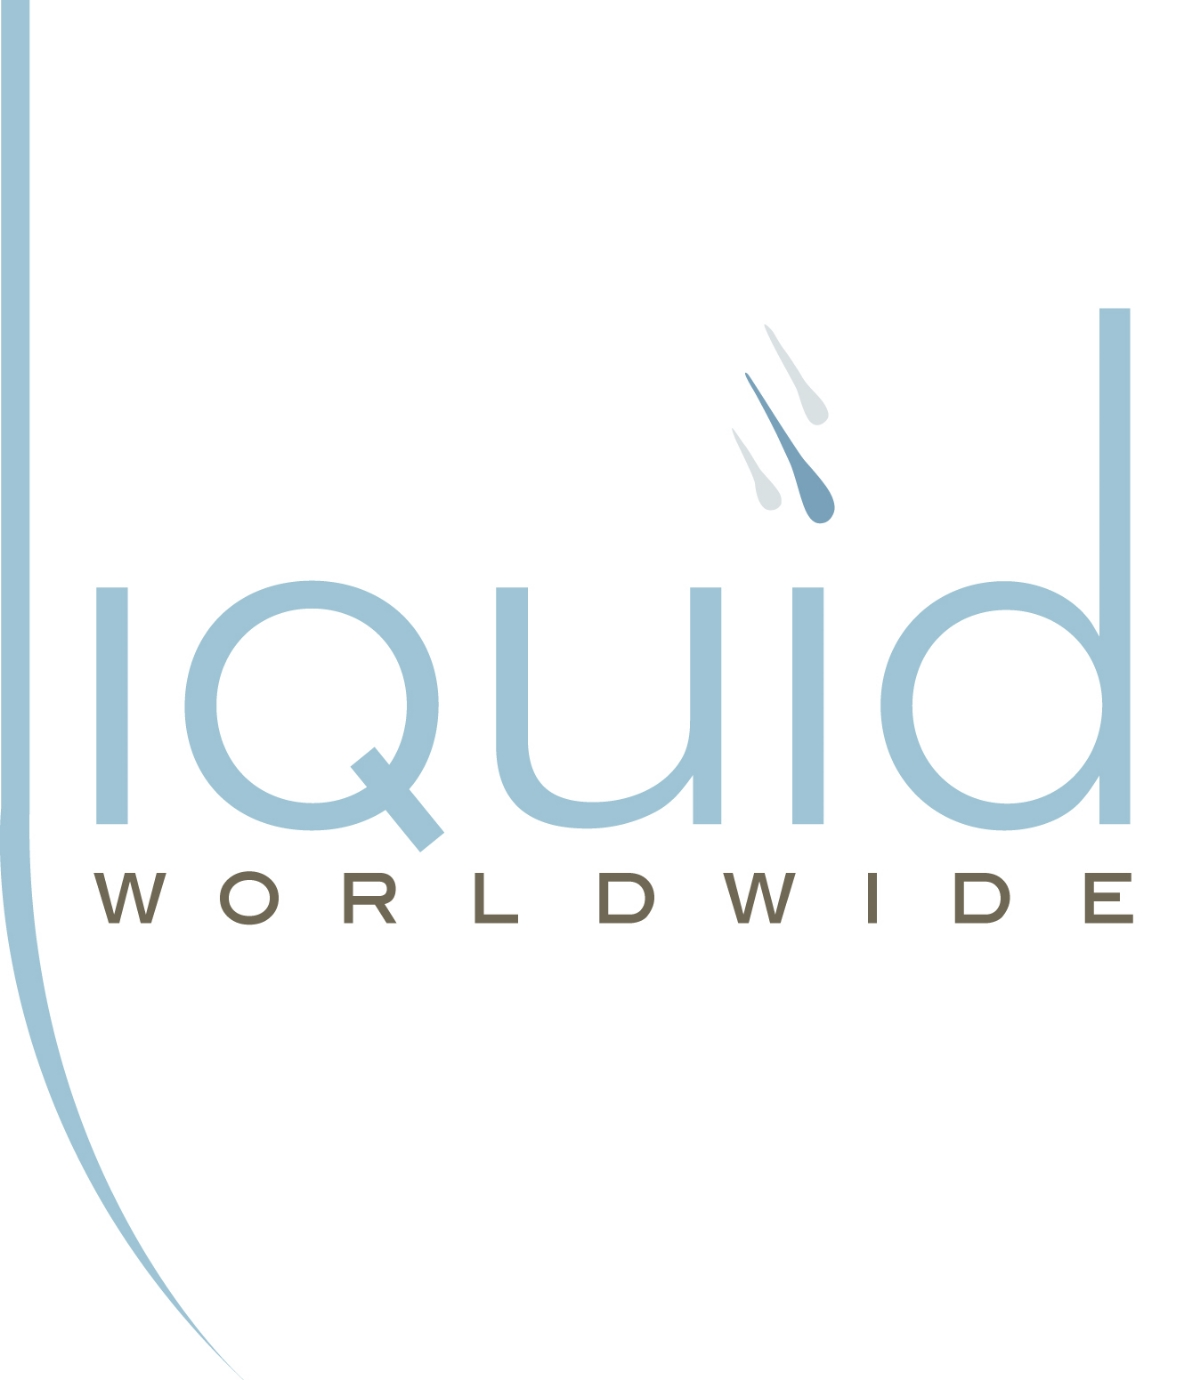 Liquid Worldwide